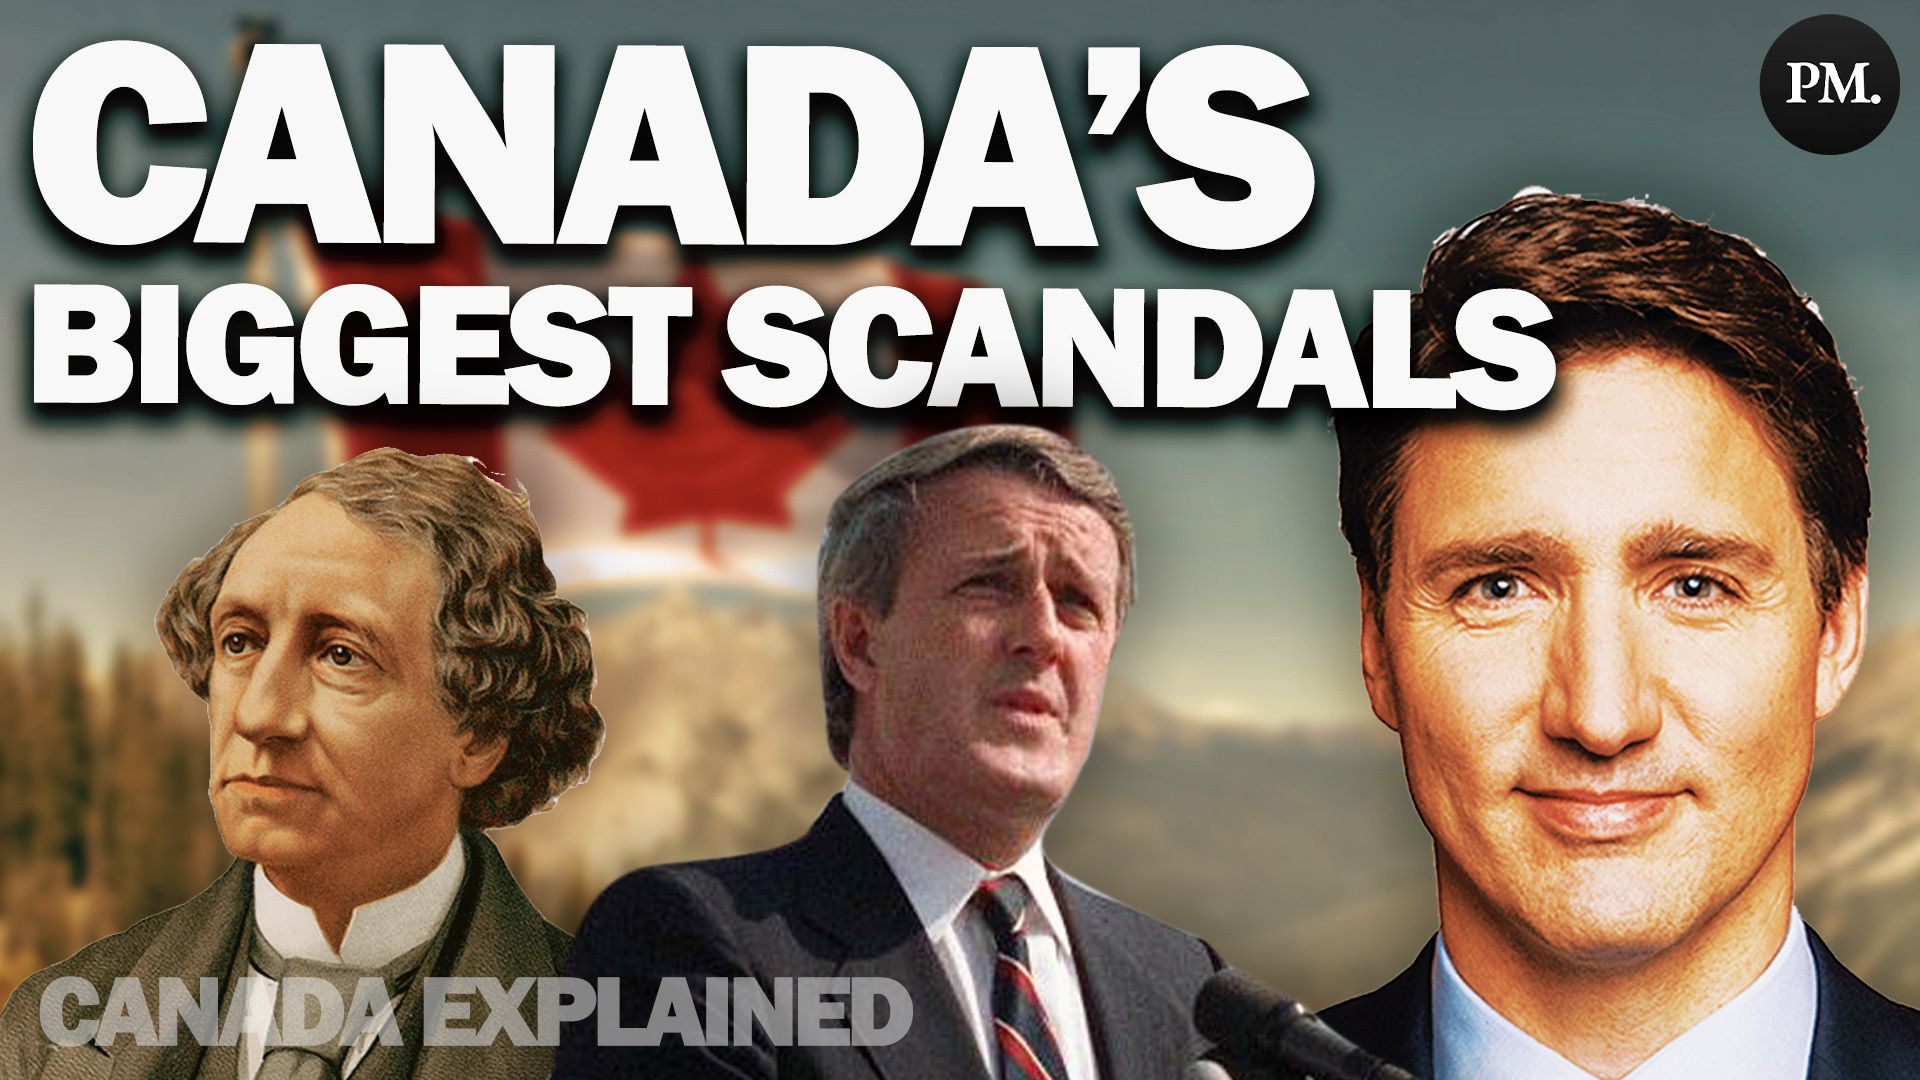 WATCH: The worst political scandals in Canadian history